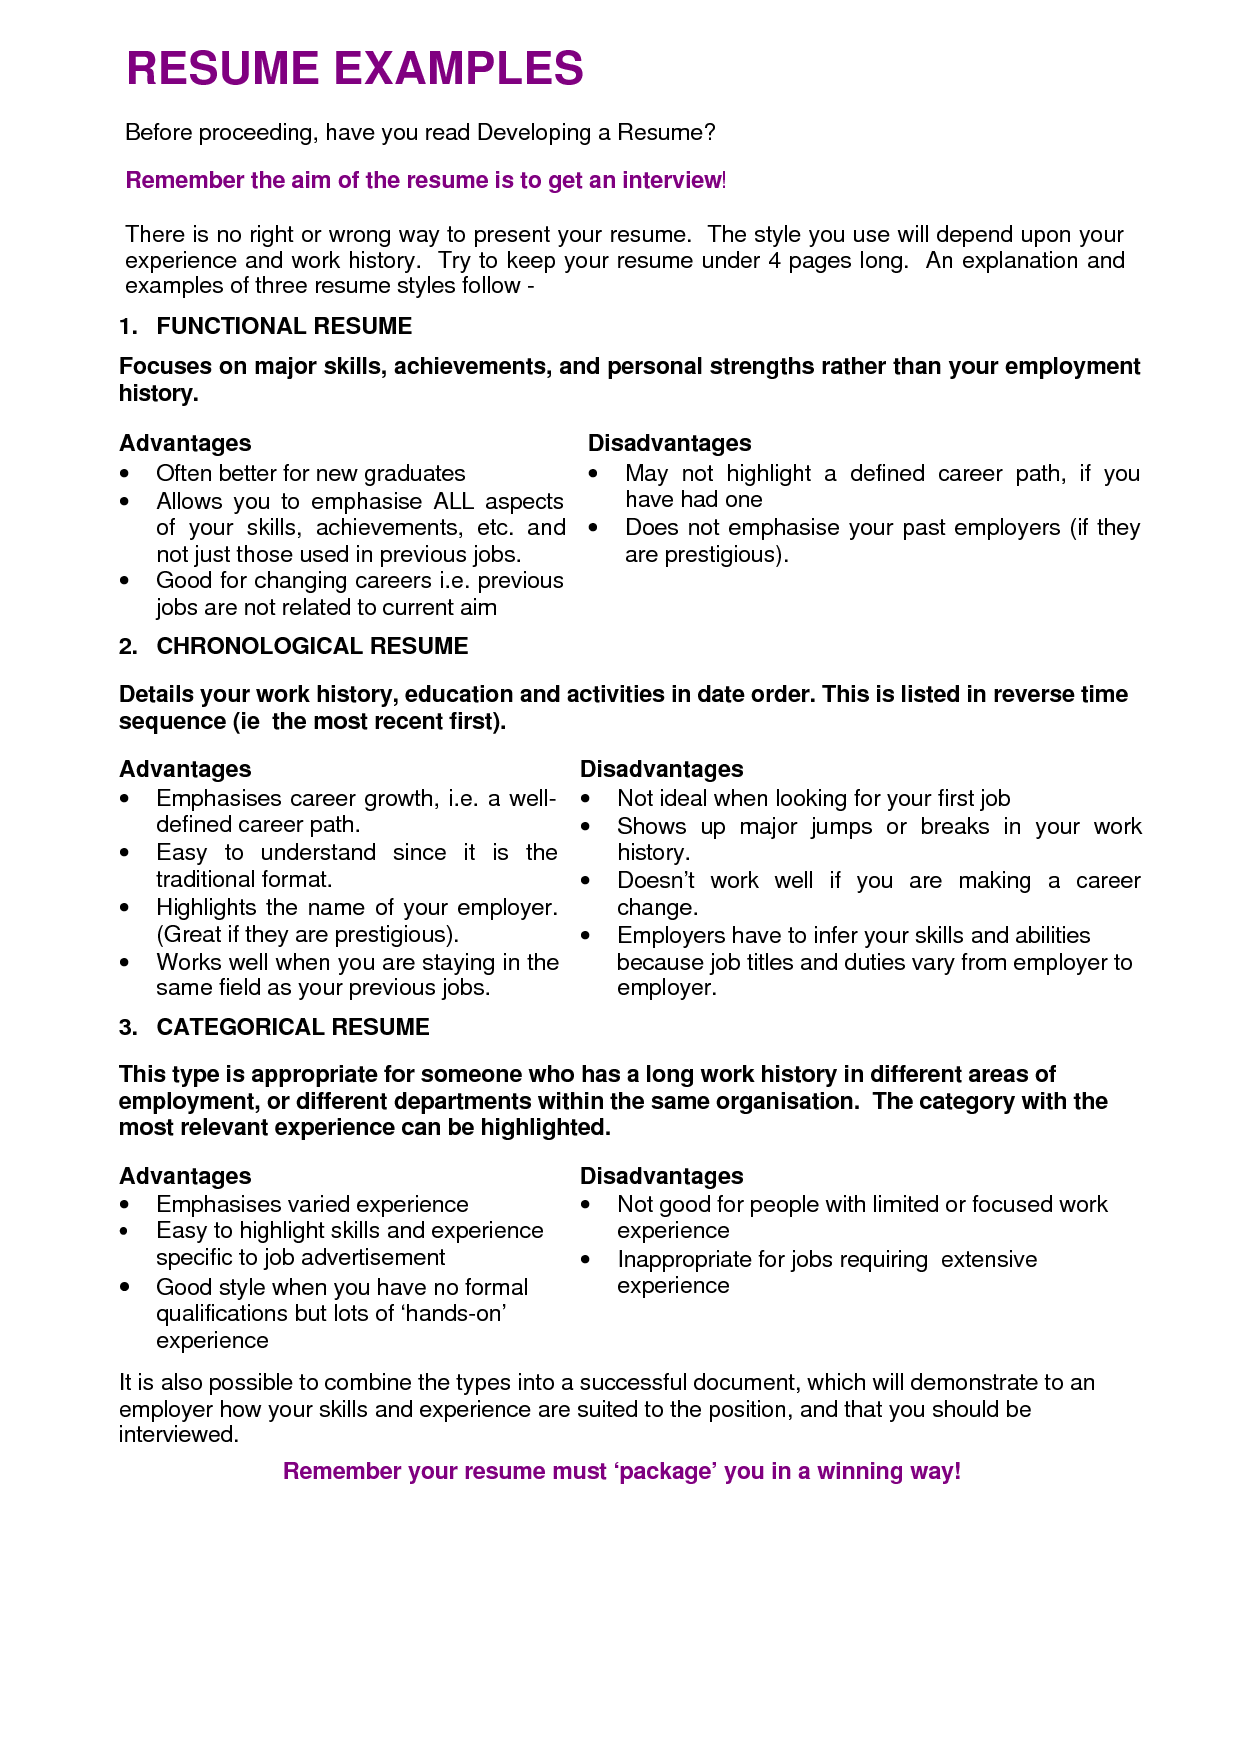 Examples Of Resume Objectives Resume Objective Examples Best Templateresume Objective Examples